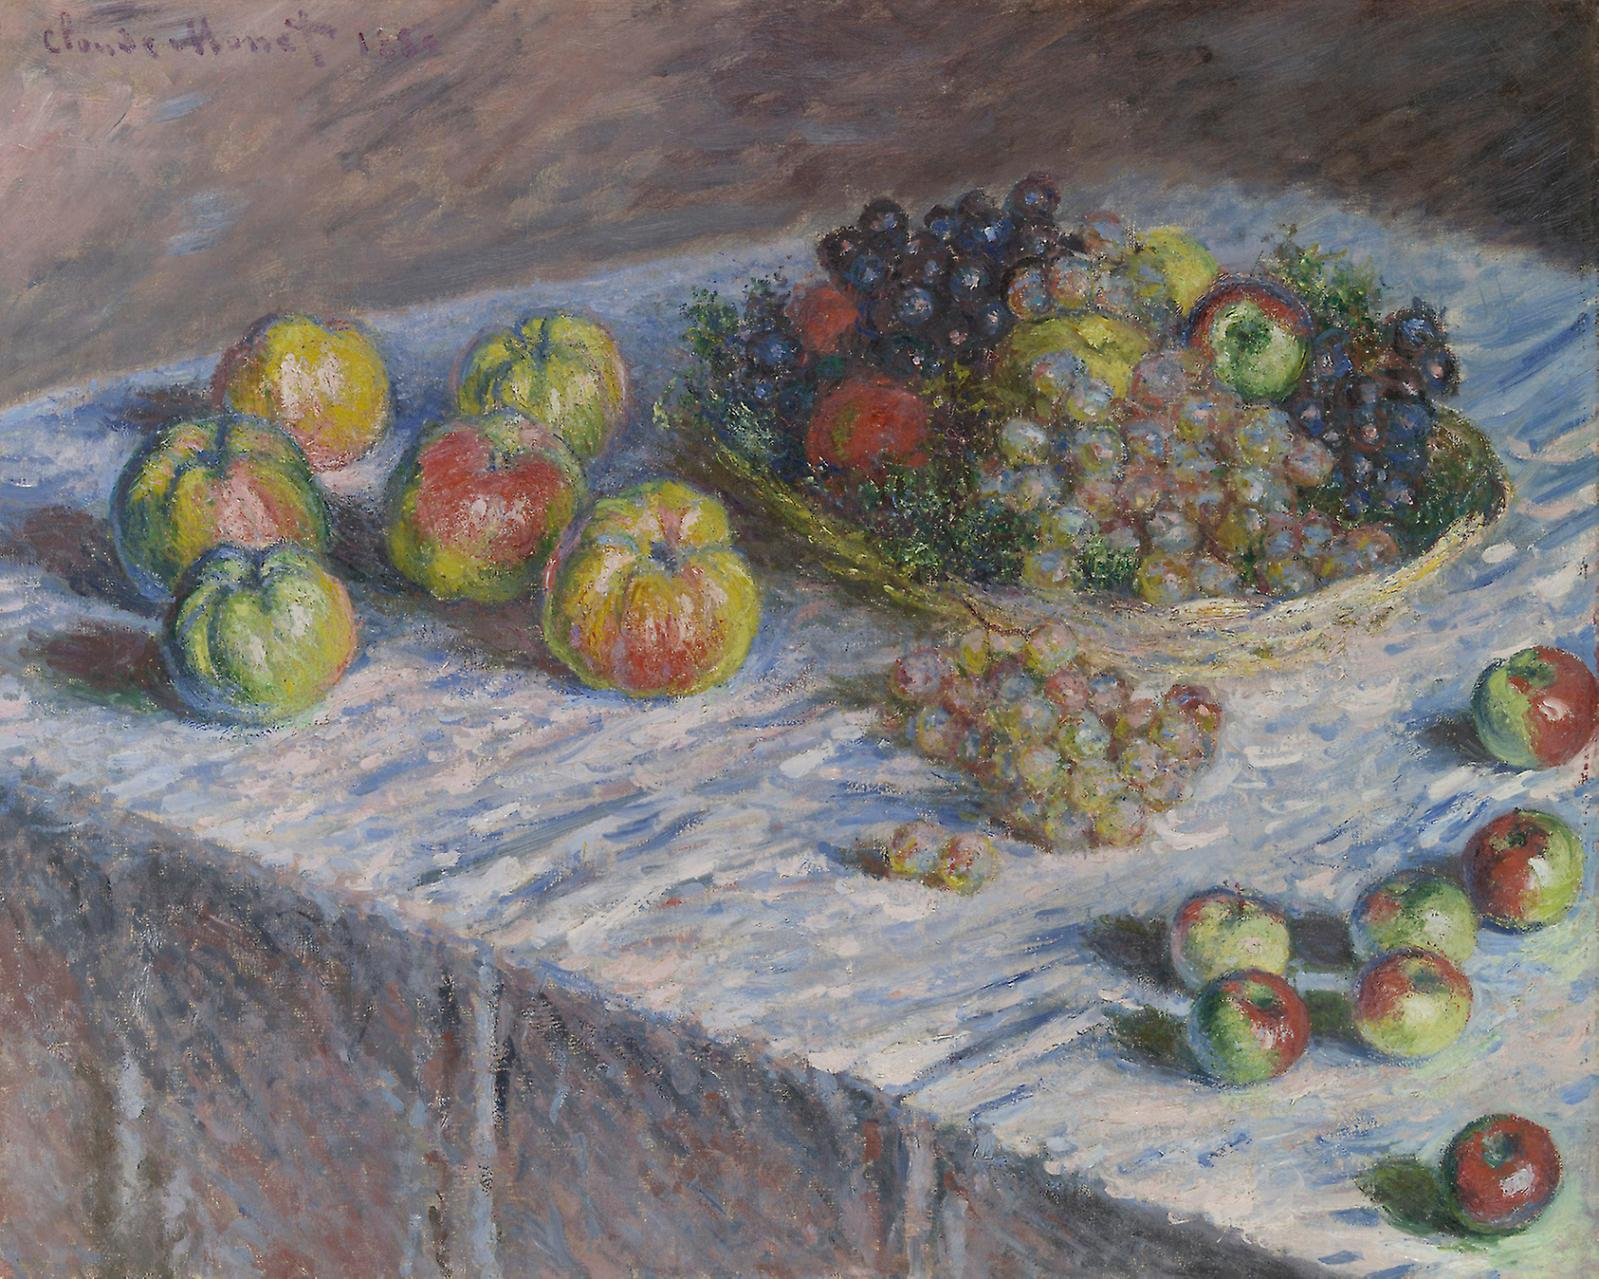 Claude Monet, Apples and Grapes, 1880, oil on canvas.Courtesy of The Art Institute of Chicago, Mr. and Mrs. Martin A. Ryerson Collection.